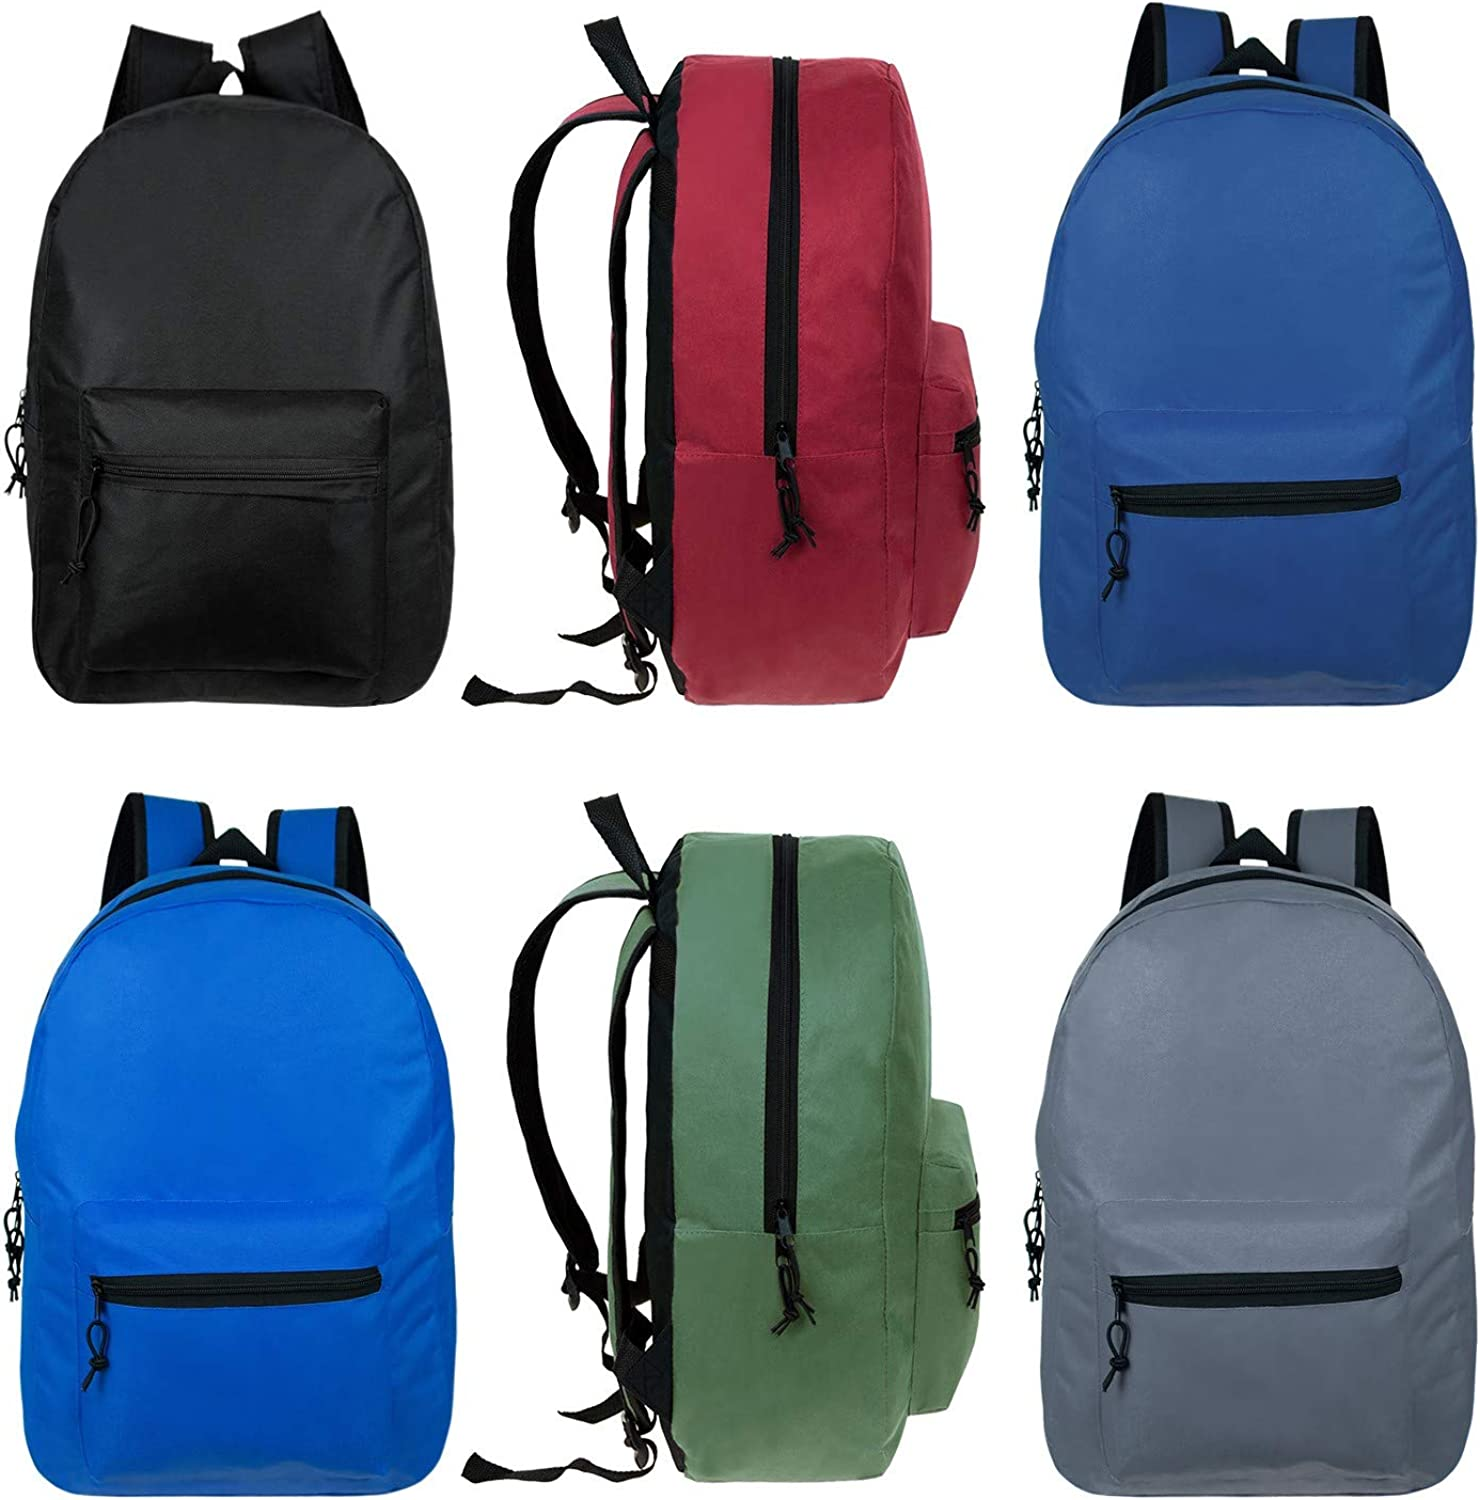 17 Inch Bulk Backpacks in Assorted Colors with 12 Piece School Supply Kits Wholesale Case of 24